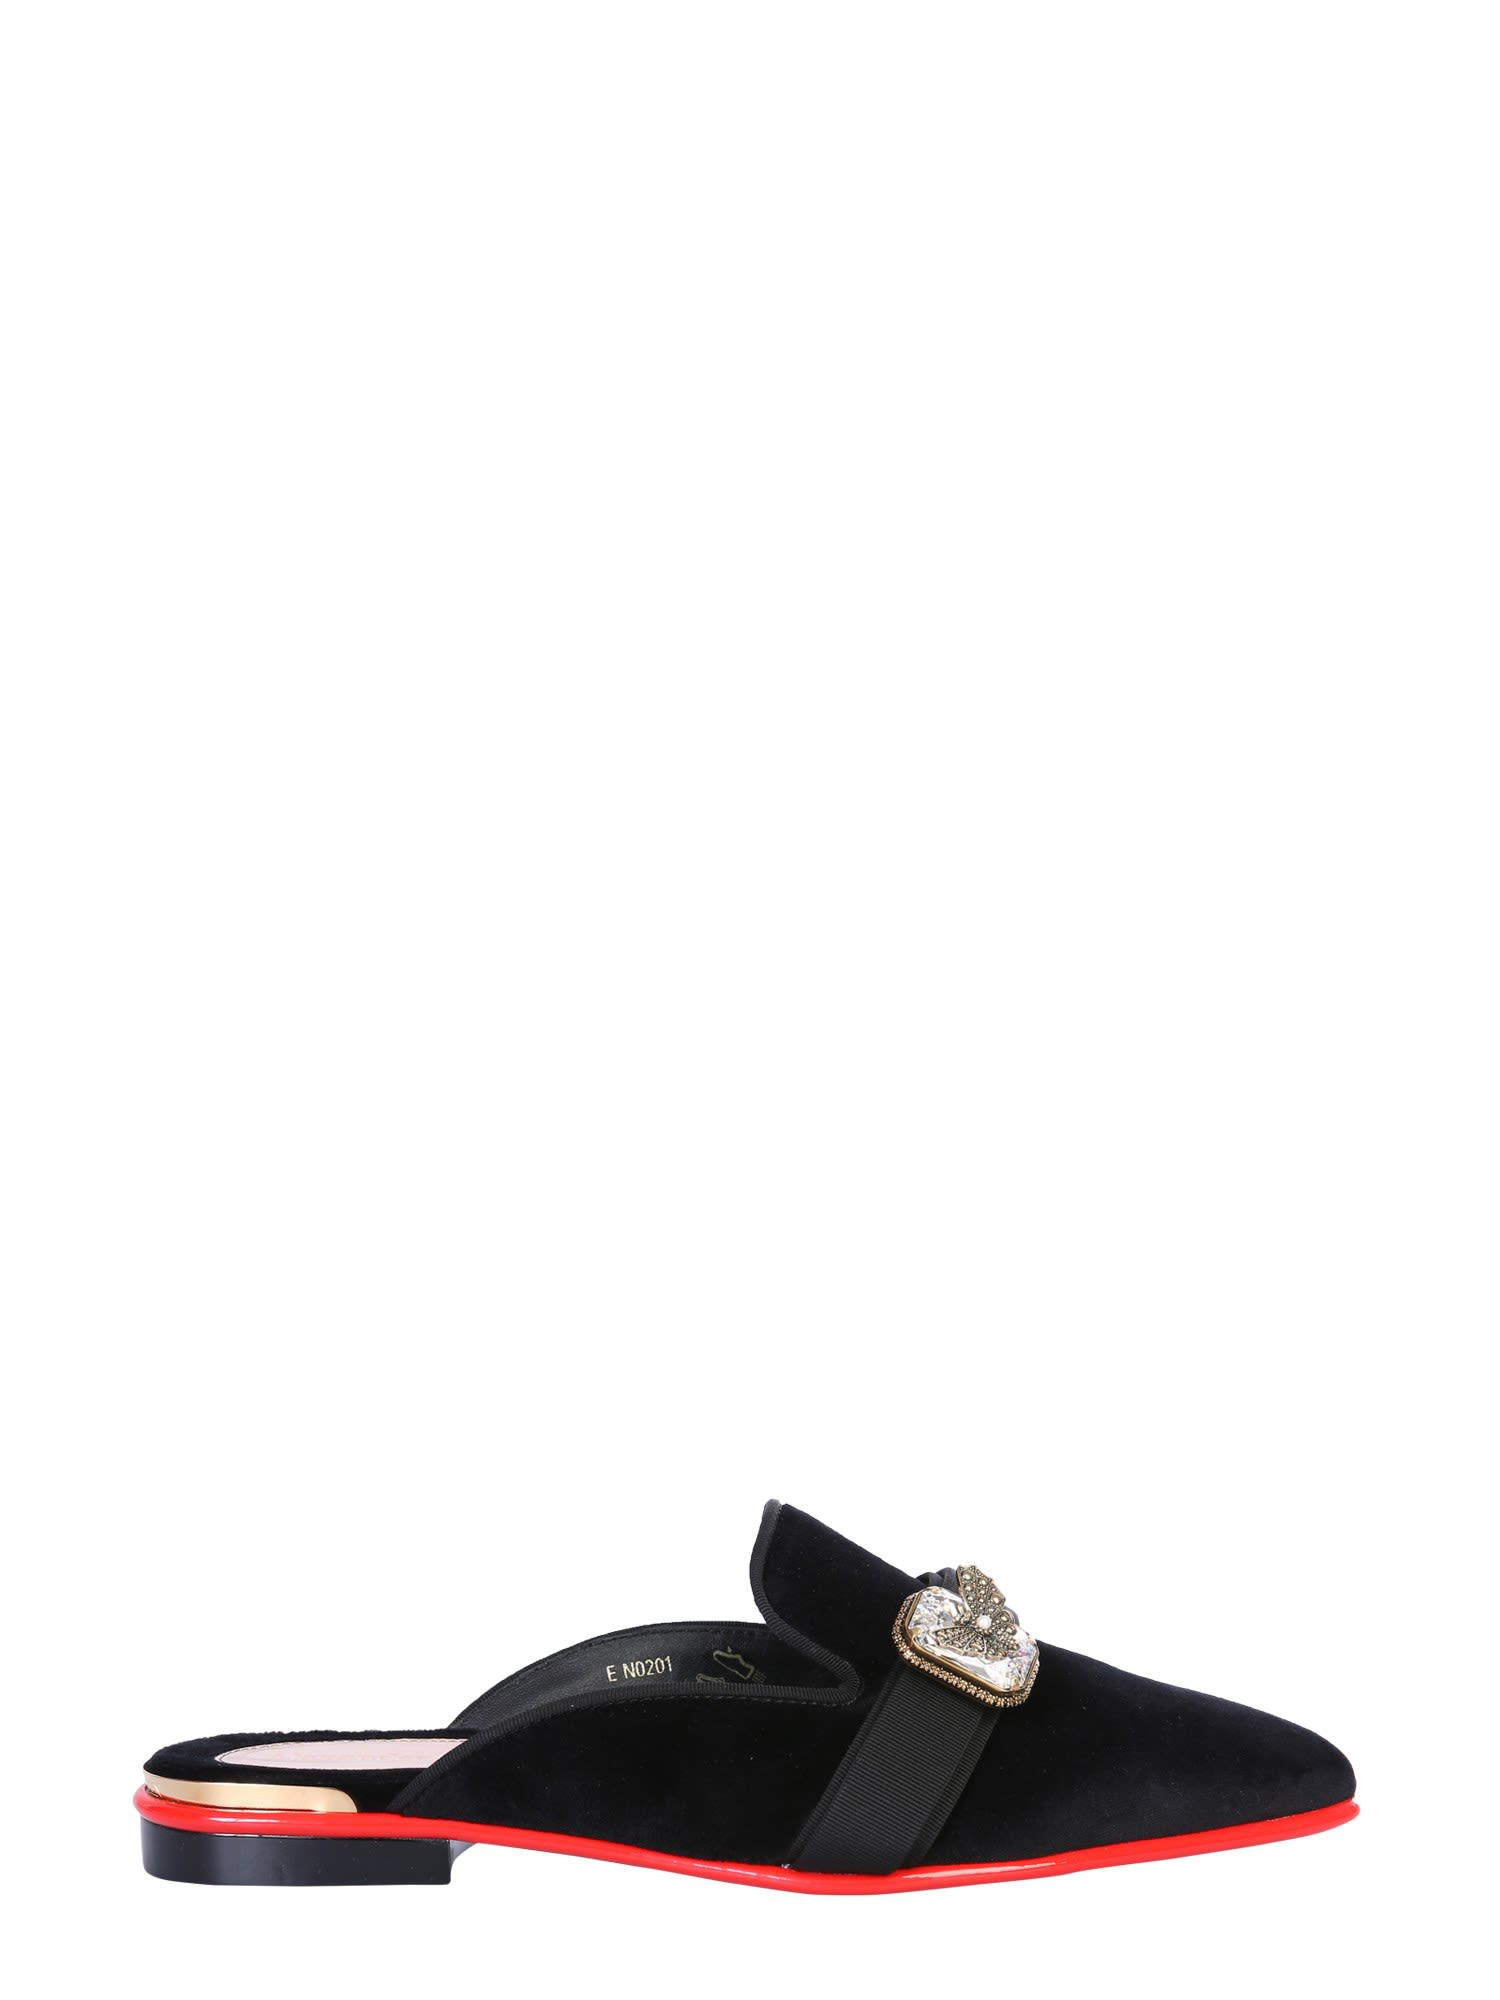 Alexander McQueen Mules Sandal With Jewel